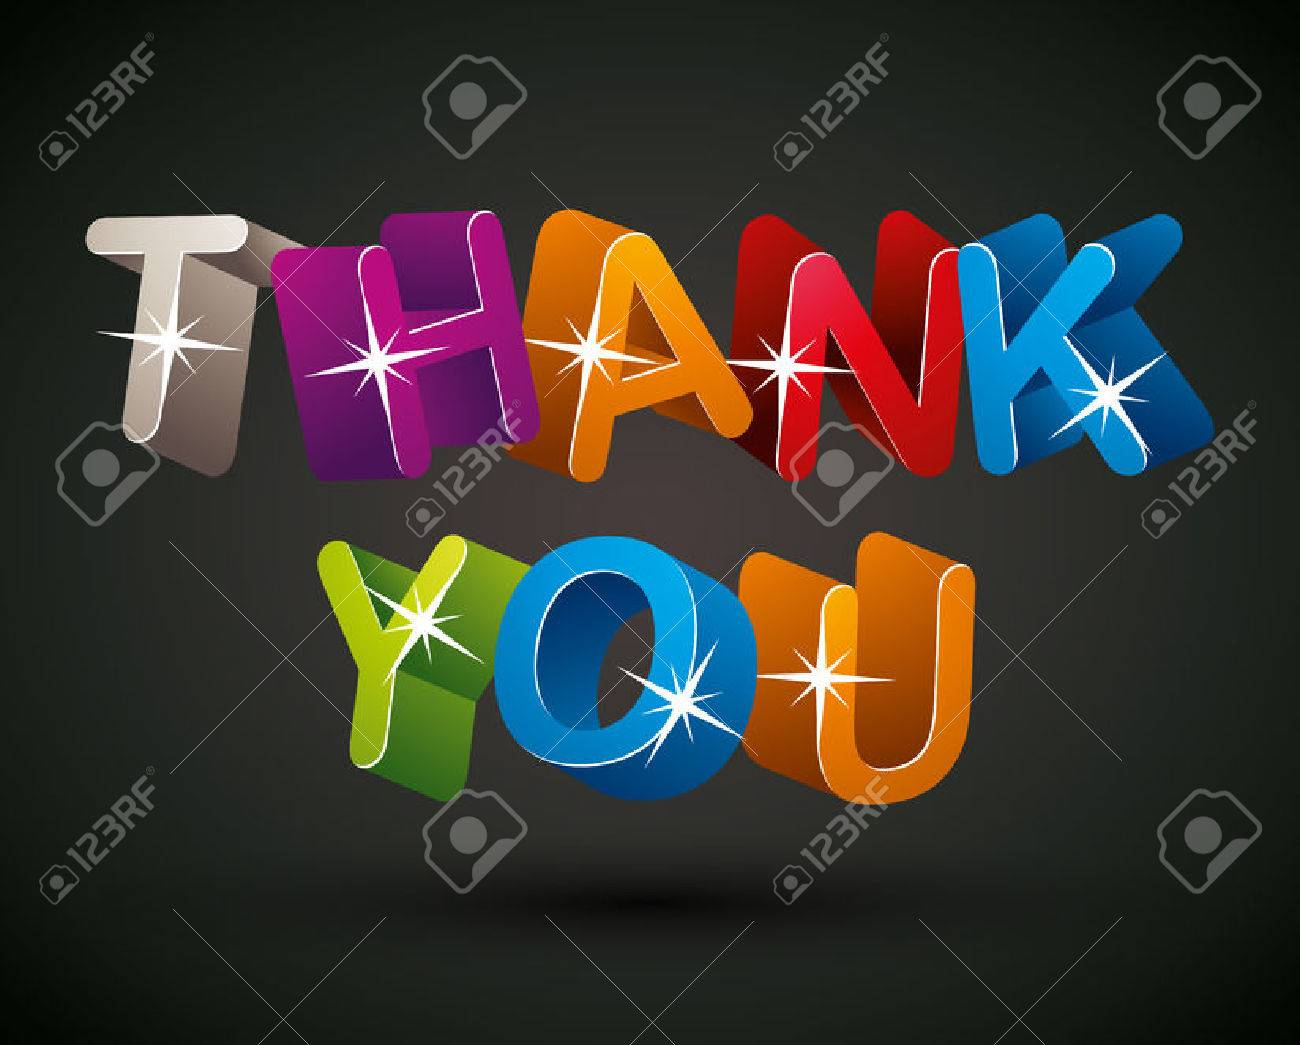 Thank you lettering made with colorful 3d letters over dark background, vector design. Stock Vector - 32658955